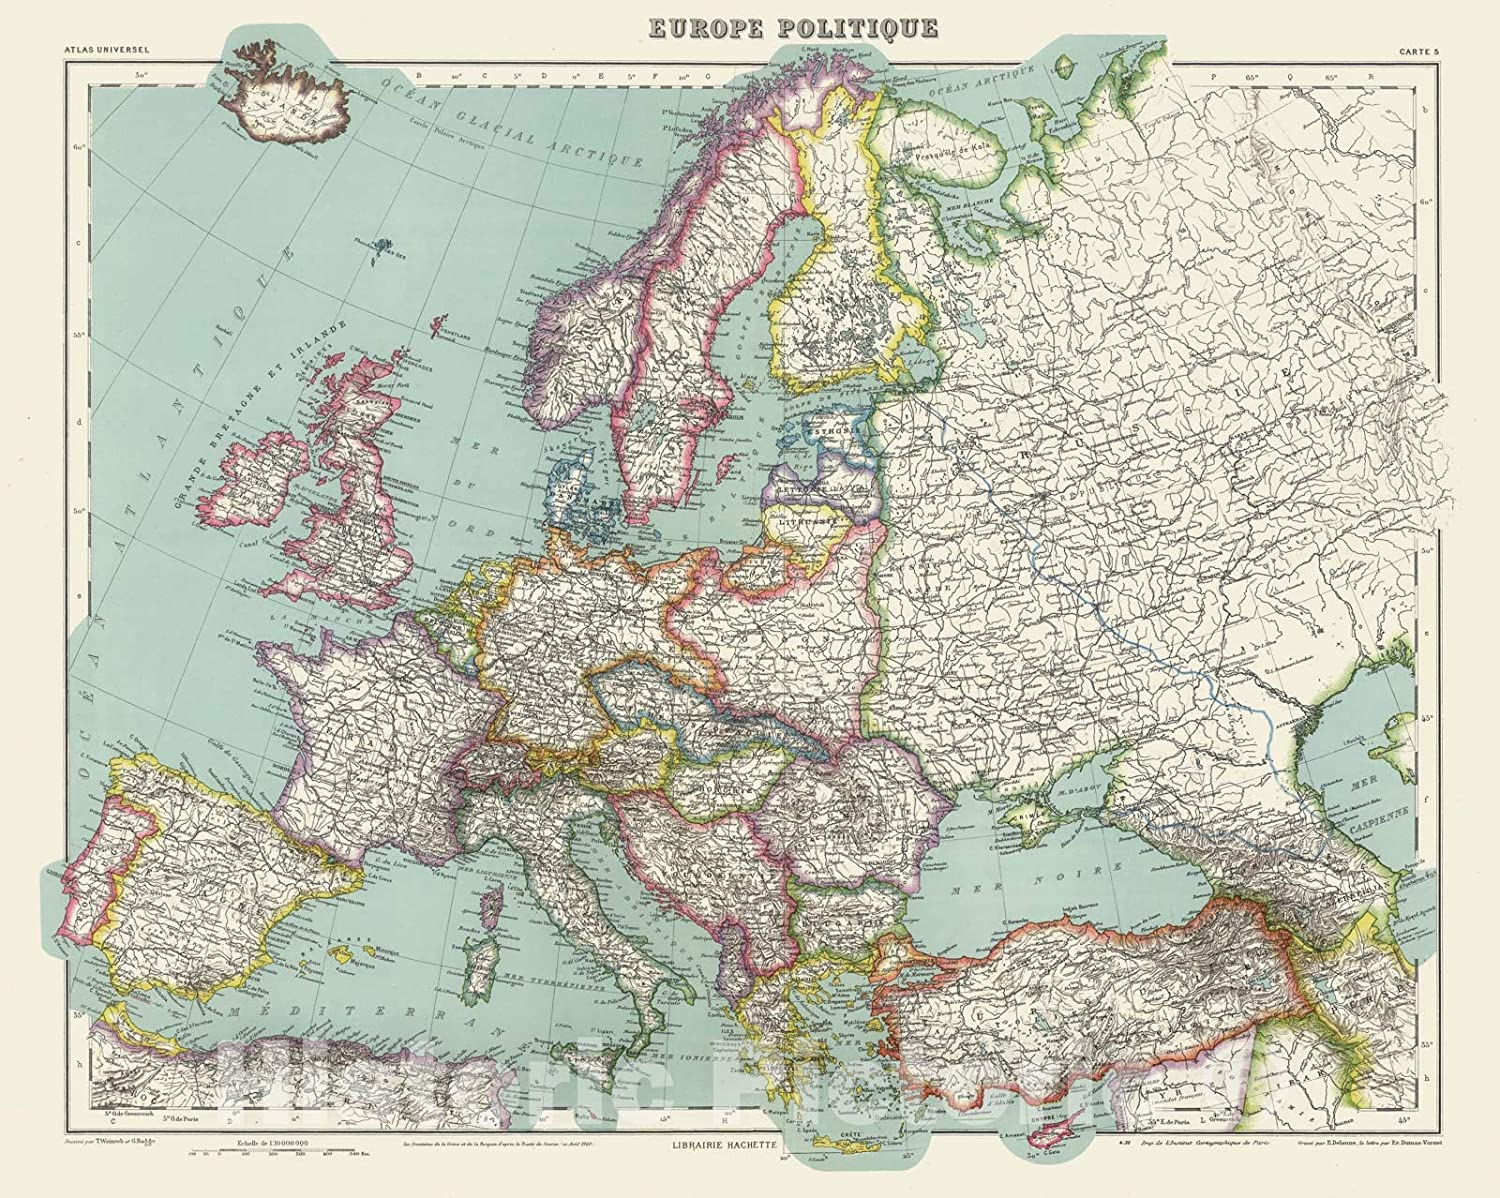 Map Of Europe 1936 Amazon.com: Historic Map   1936 Europe Politique.   Vintage Wall